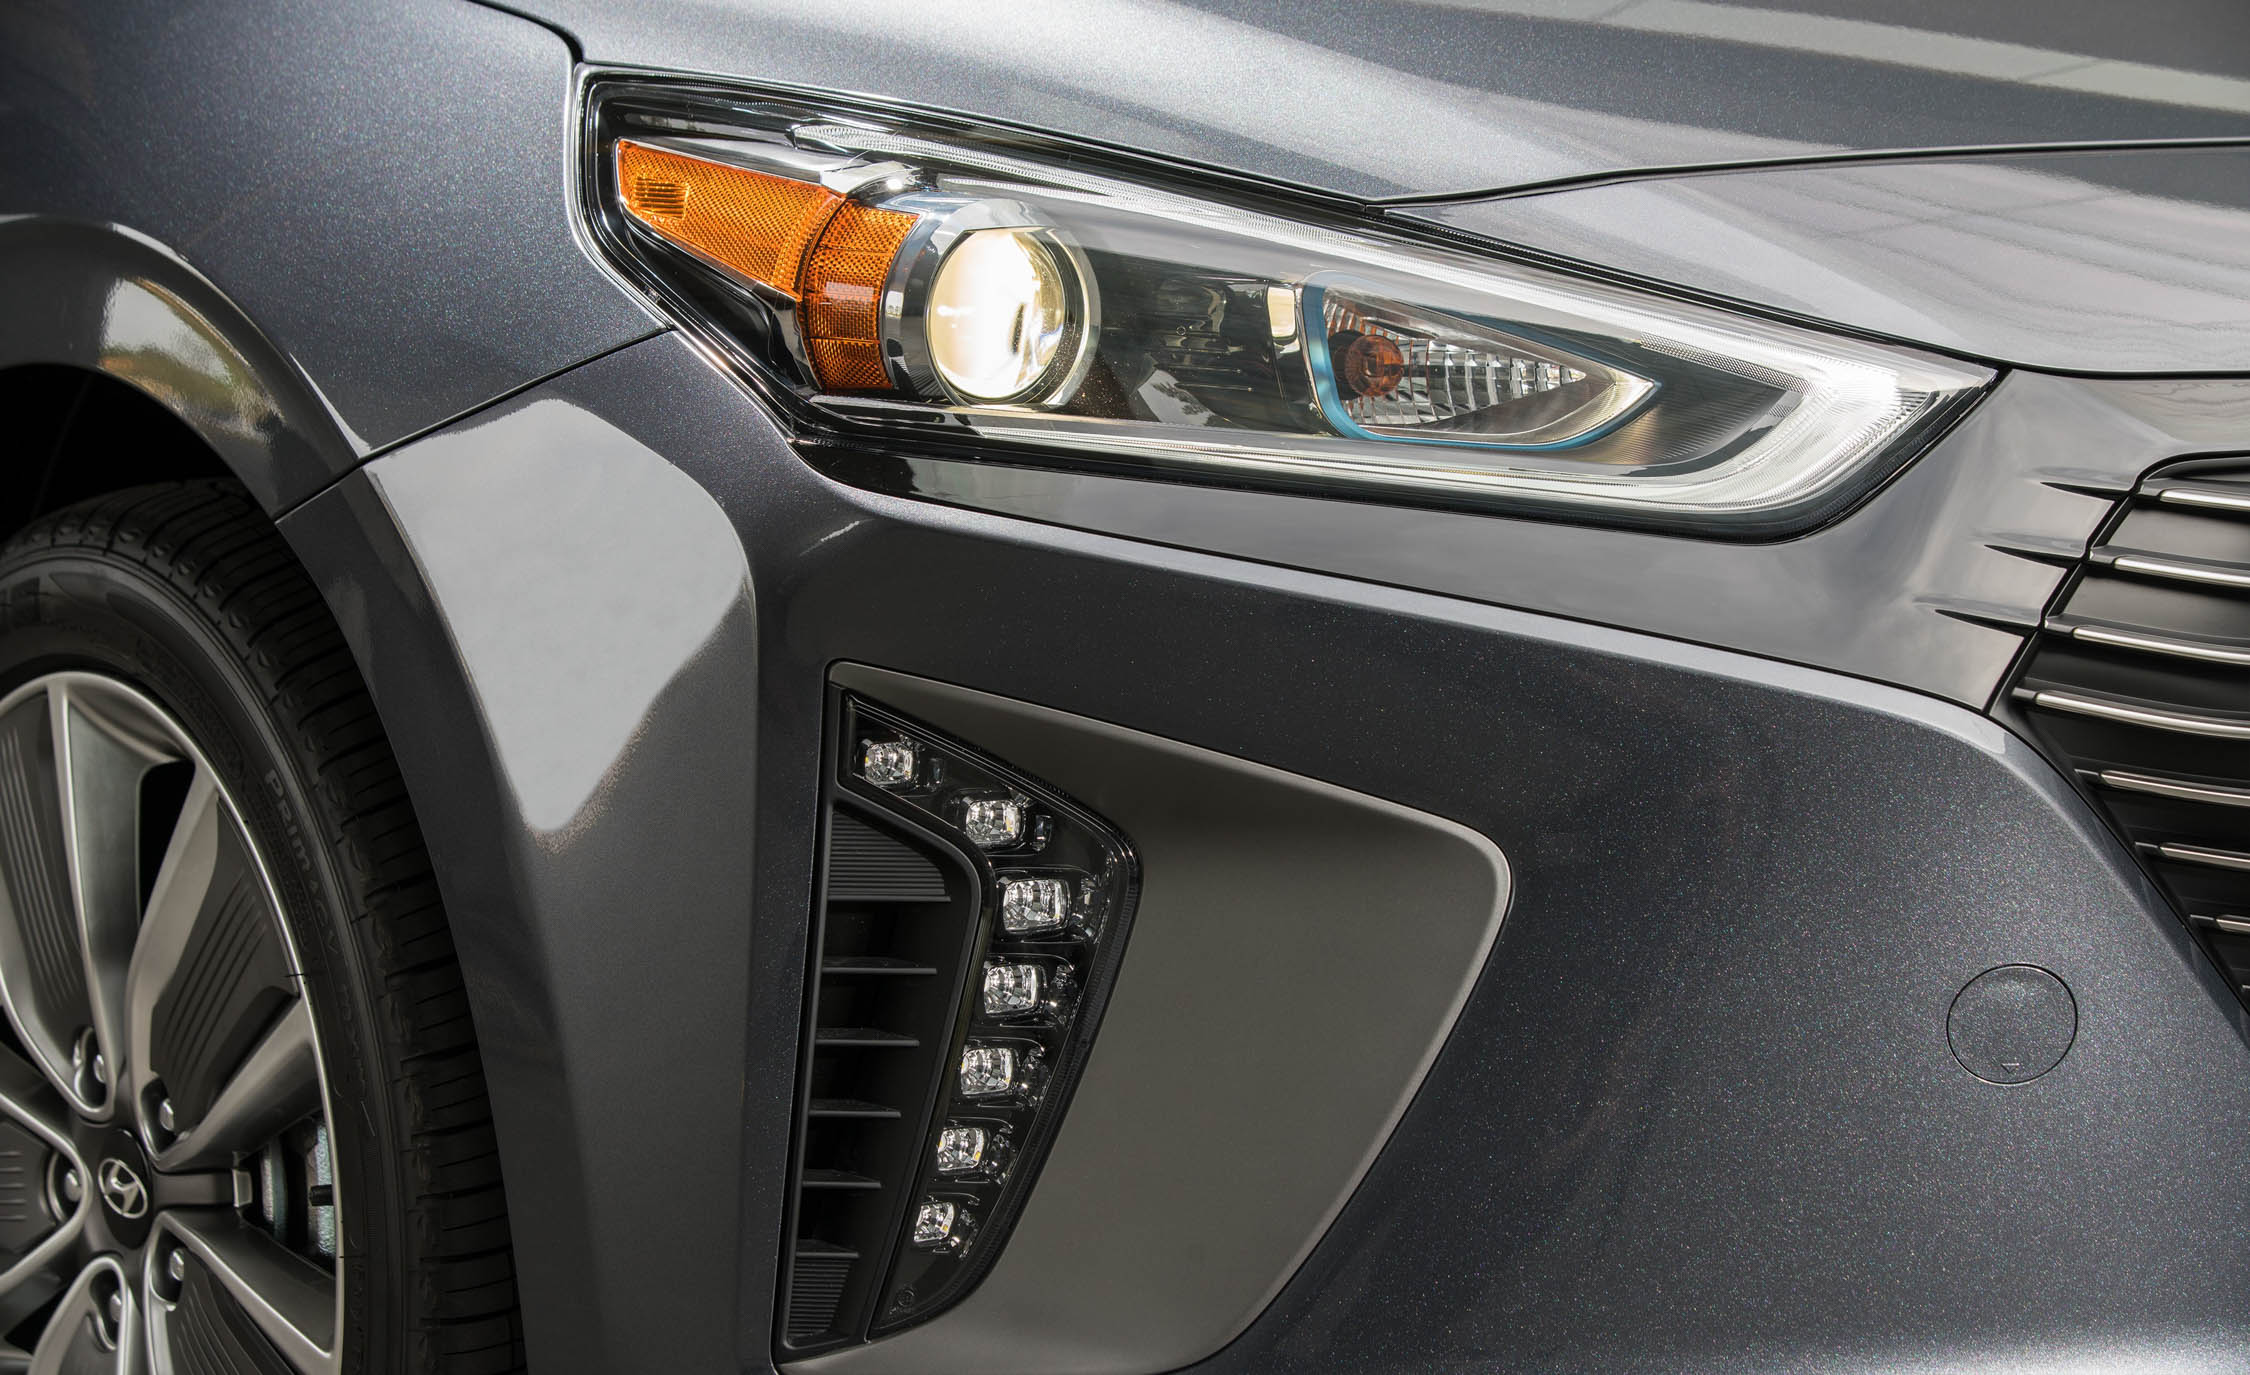 2017 Hyundai Ioniq Hybrid Exterior View Headlight (Photo 45 of 67)